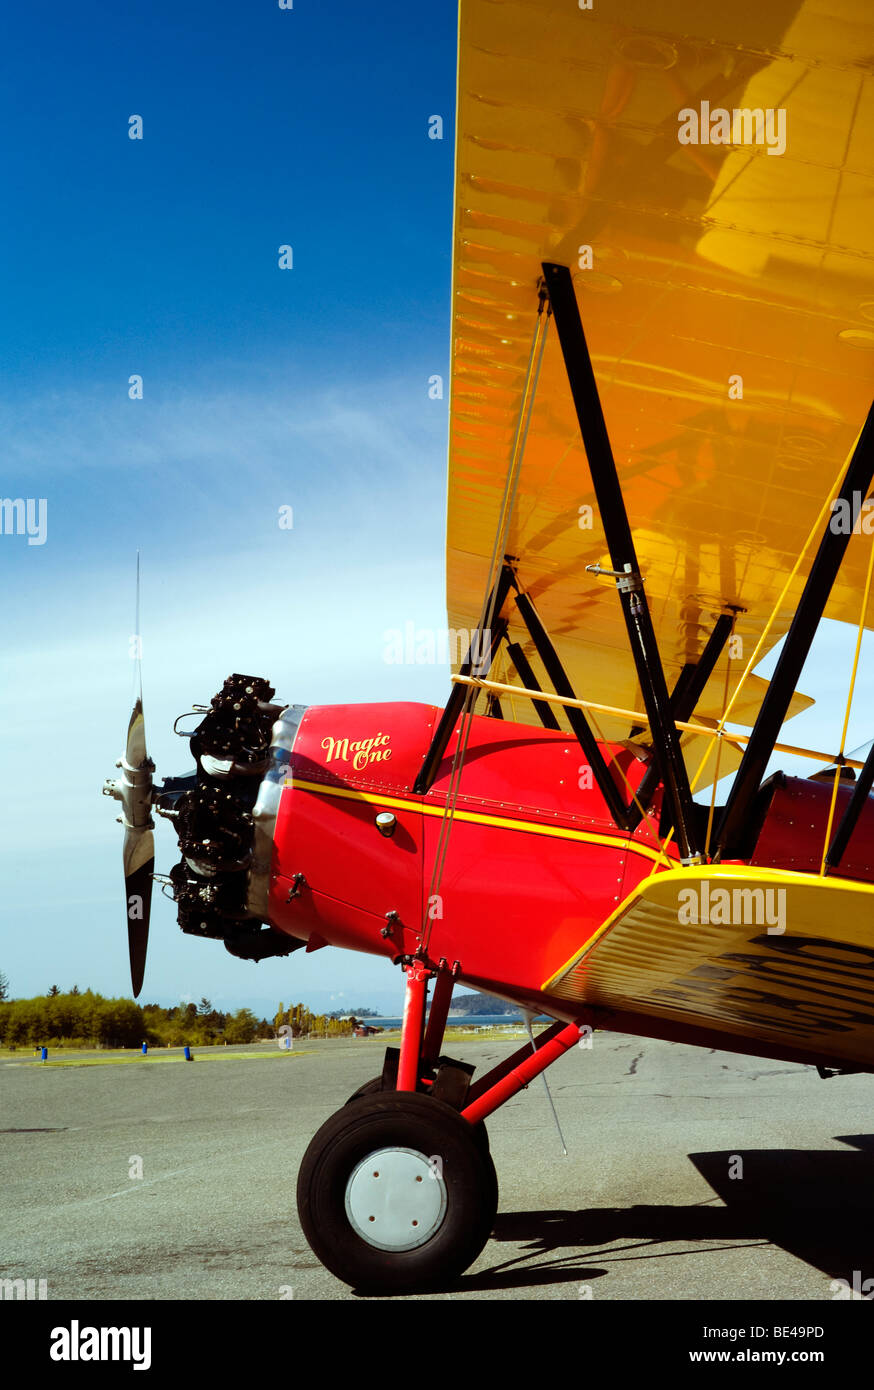 The old Waco bi-plane at the airport ready to fly and kiss the blue sky good morning. - Stock Image